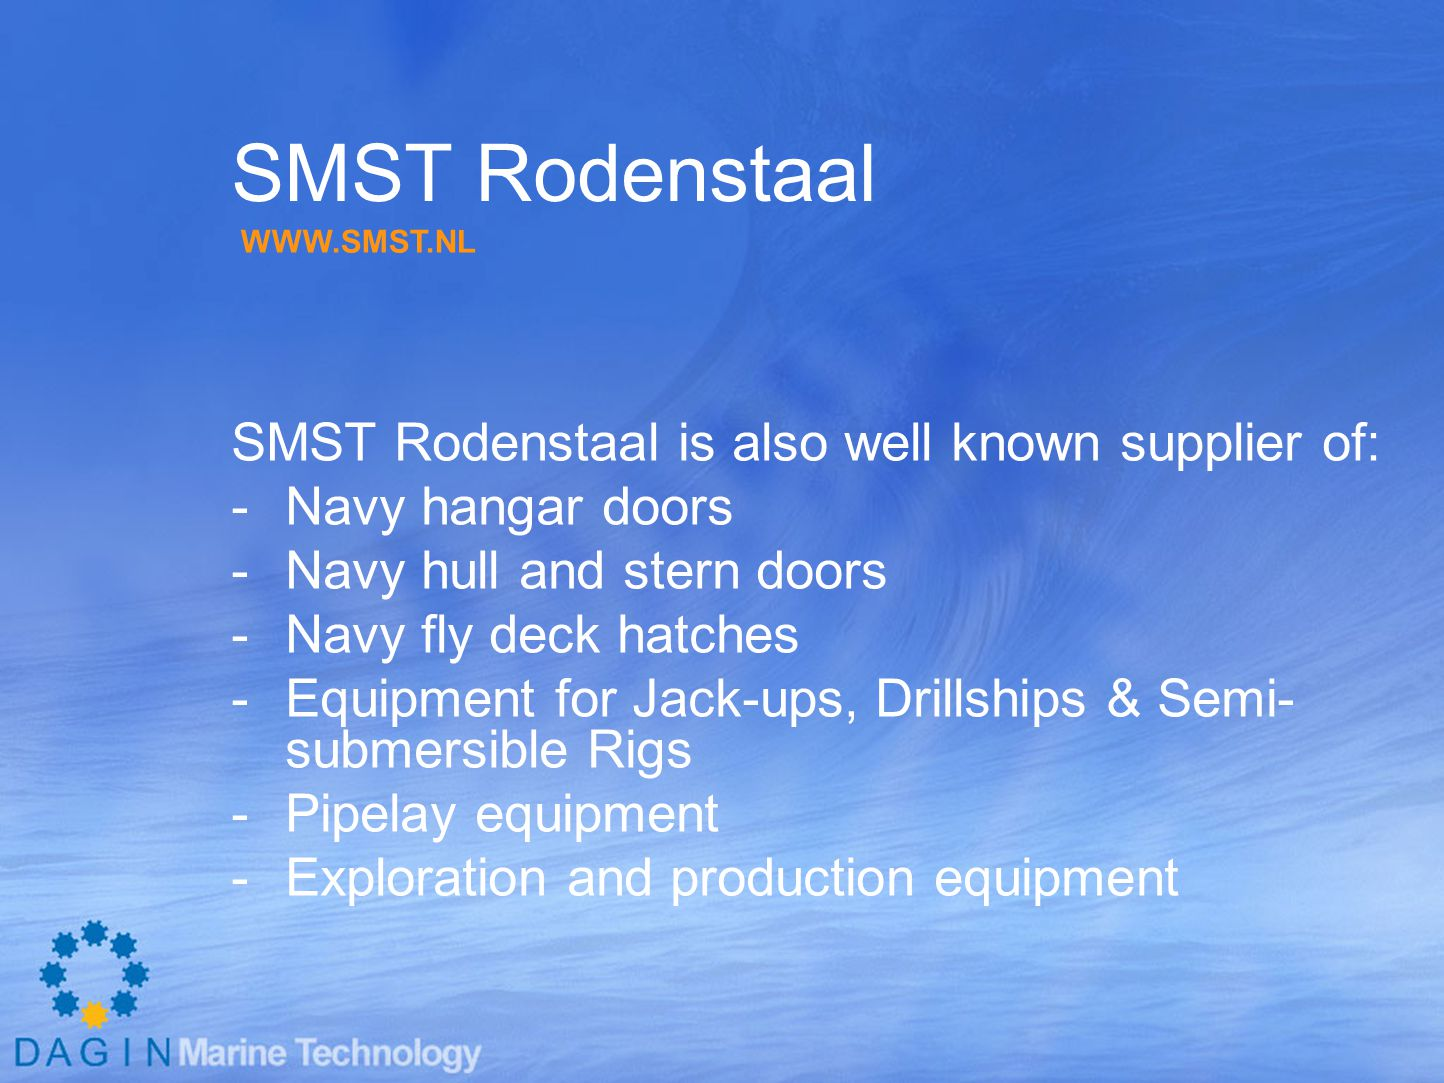 SMST Rodenstaal SMST Rodenstaal is also well known supplier of: -Navy hangar doors -Navy hull and stern doors -Navy fly deck hatches -Equipment for Jack-ups, Drillships & Semi- submersible Rigs -Pipelay equipment -Exploration and production equipment WWW.SMST.NL